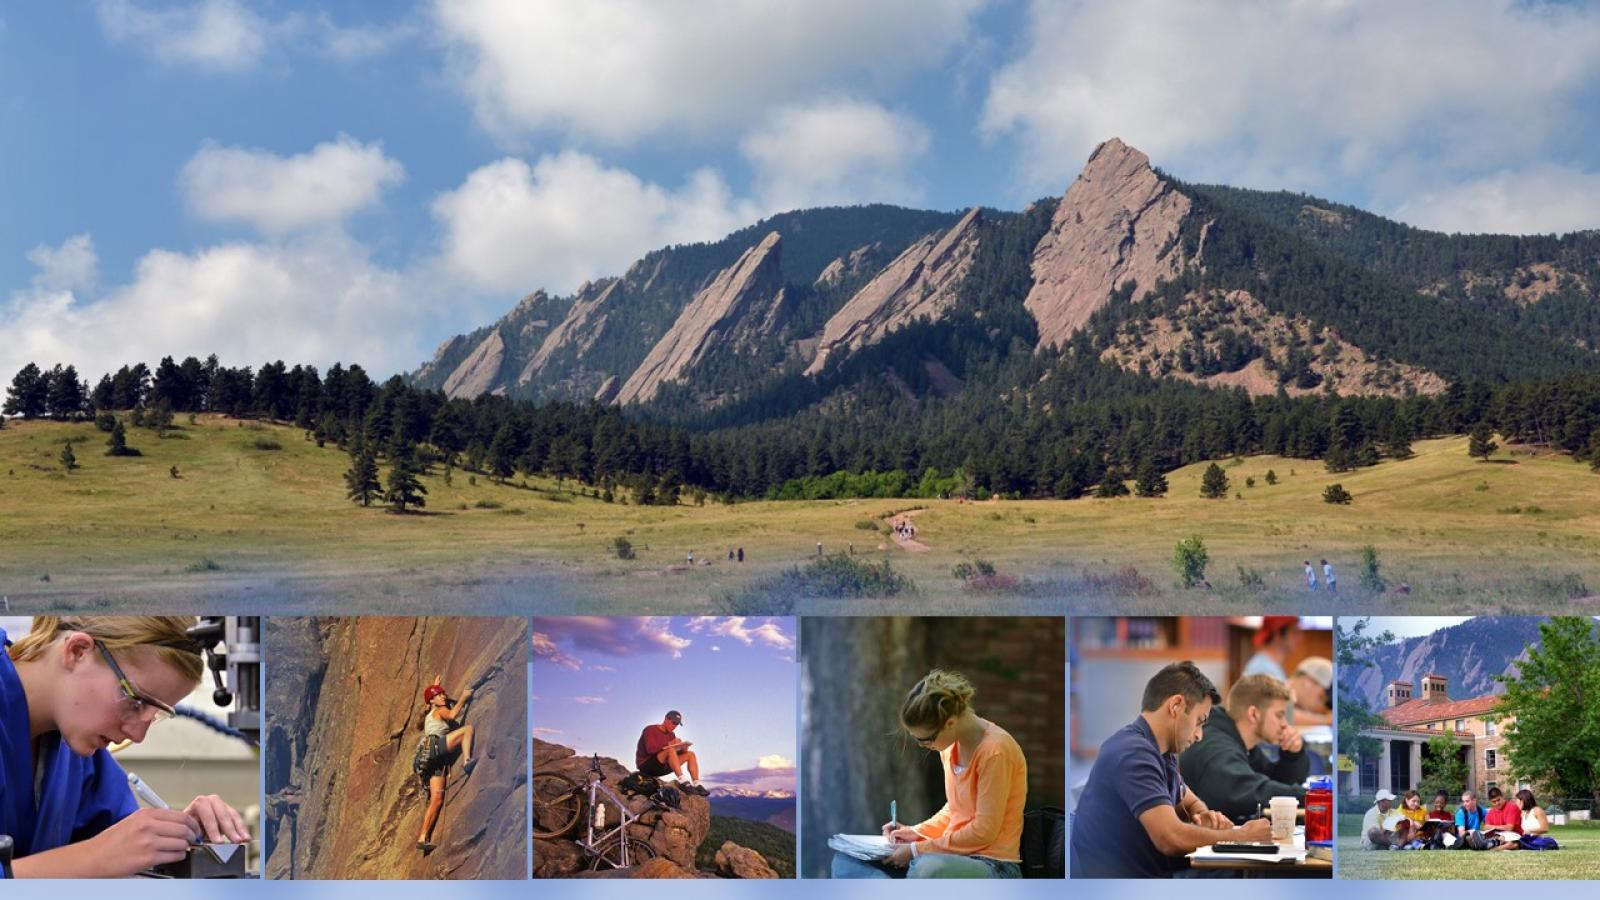 A mountain scene, with images of students working and recreating